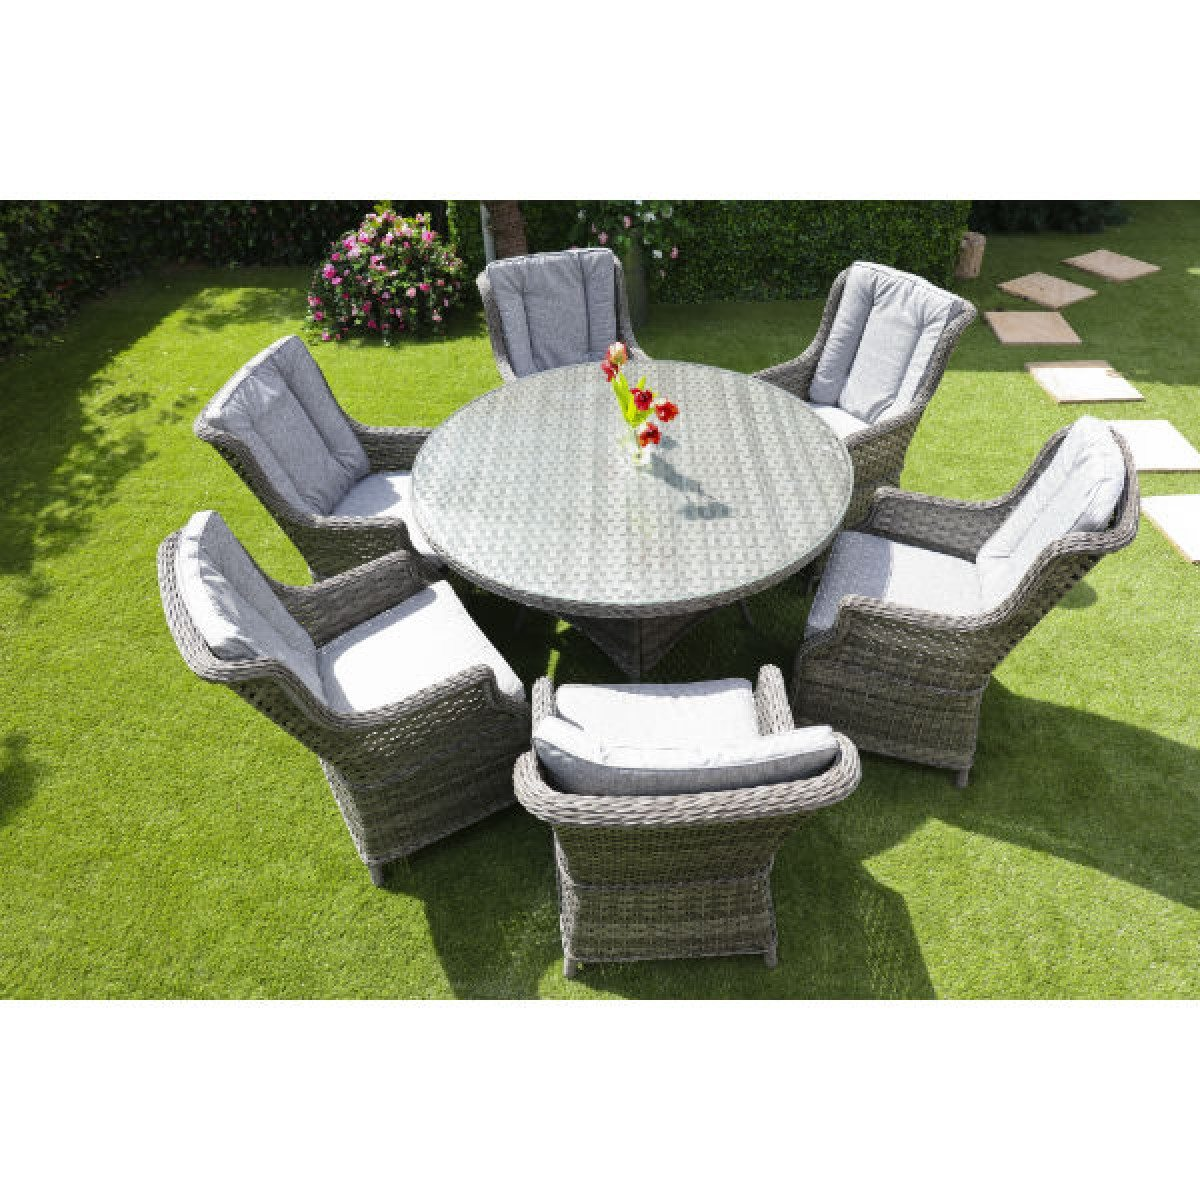 Garden Furniture 6 Seater amalfi rattan round 6 seater garden furniture set